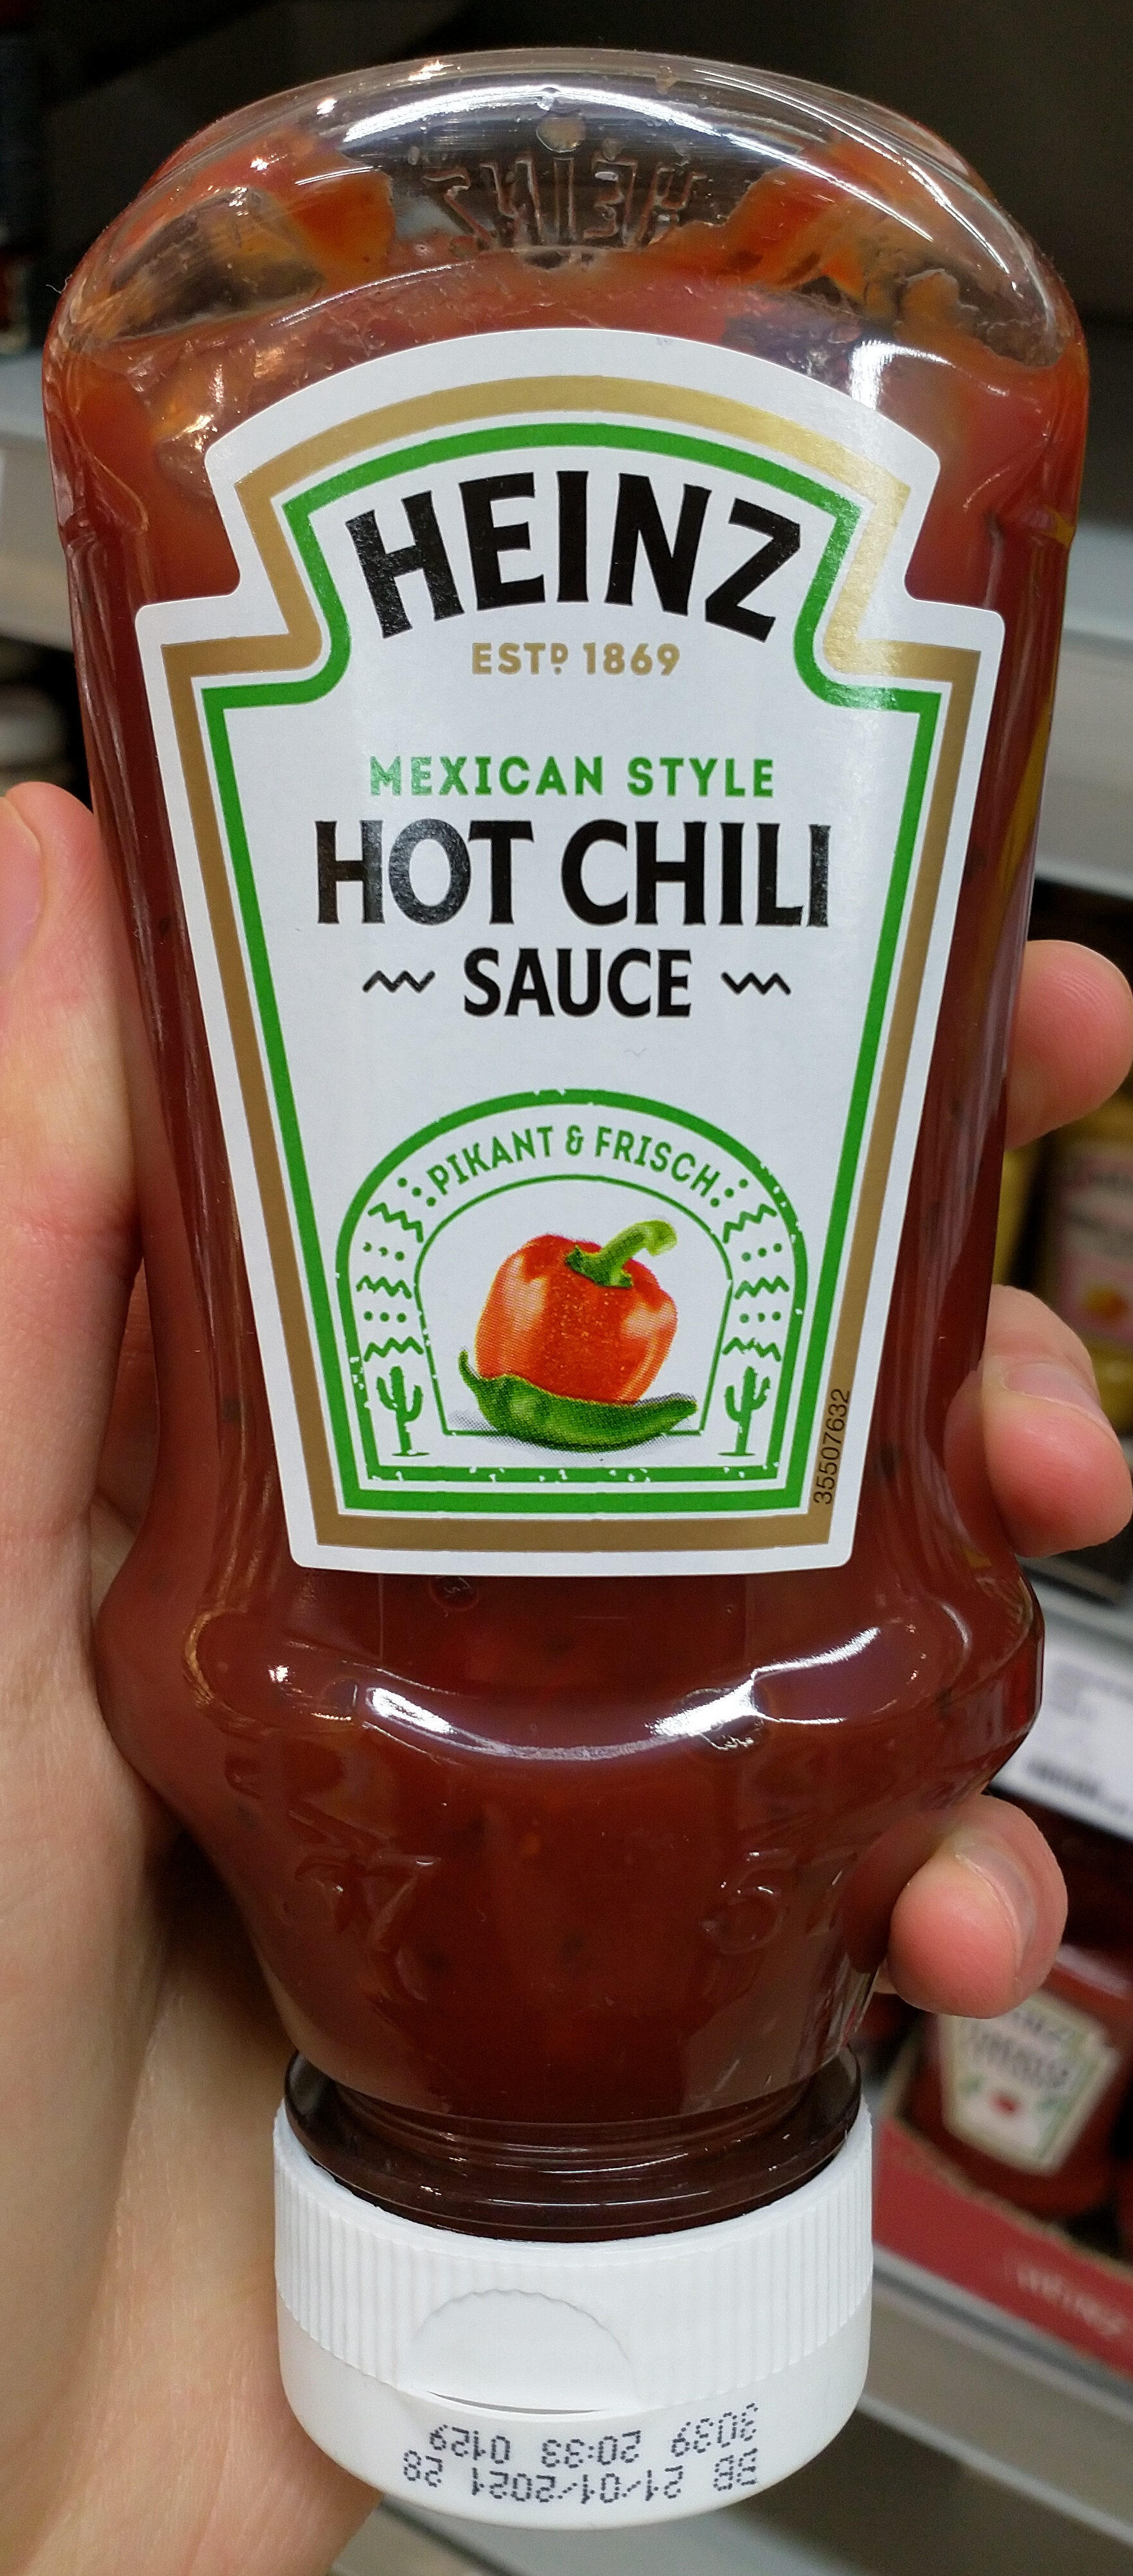 Hot chili - Product - de